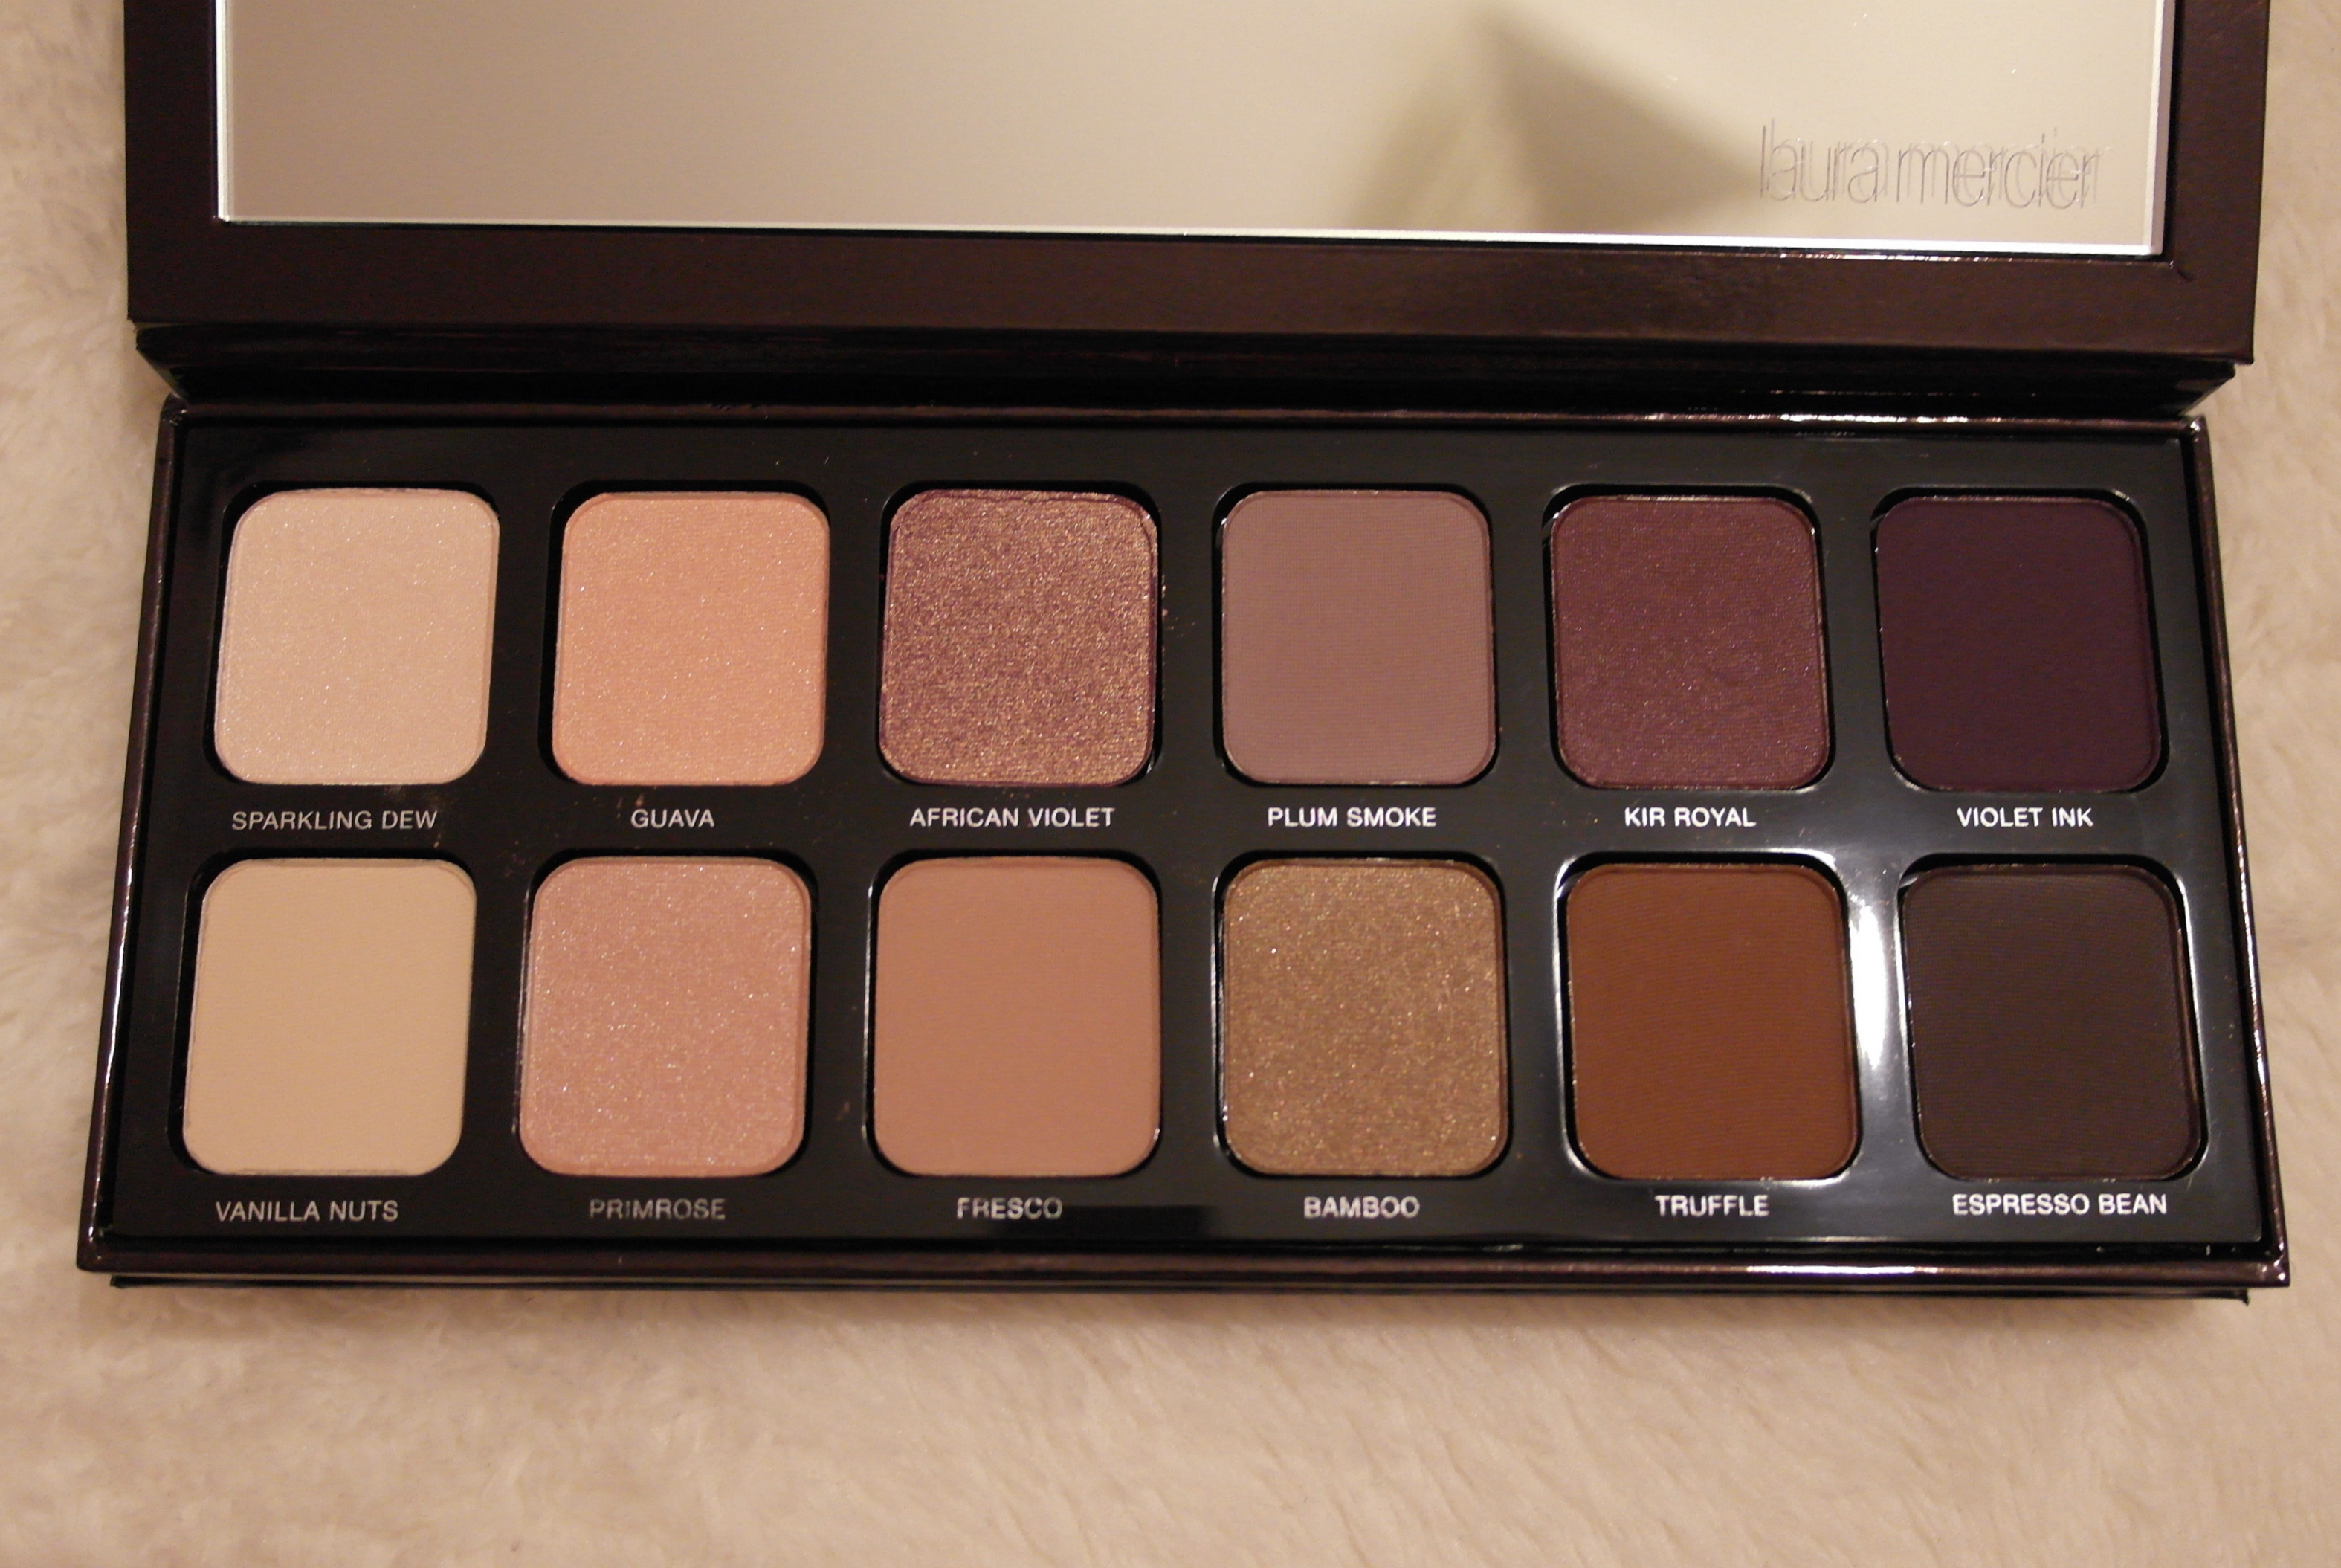 Laura Mercier Eye Artist's Palette